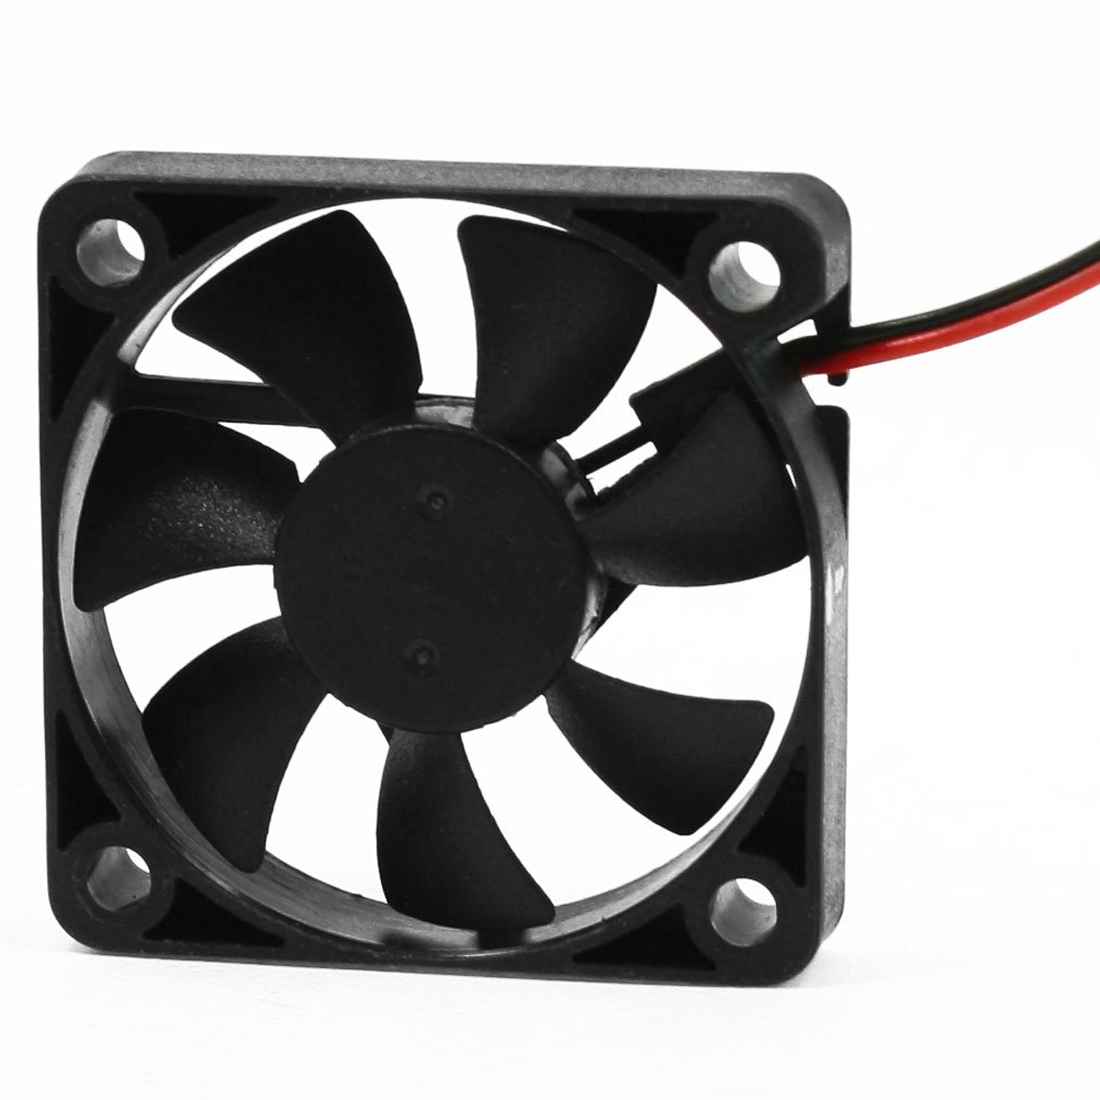 YOC Hot 50mm x 50mm x 10mm 5010 DC 12V 0.1A 2Pin Brushless Cooling Fan gdstime 10 pcs dc 12v 14025 pc case cooling fan 140mm x 25mm 14cm 2 wire 2pin connector computer 140x140x25mm